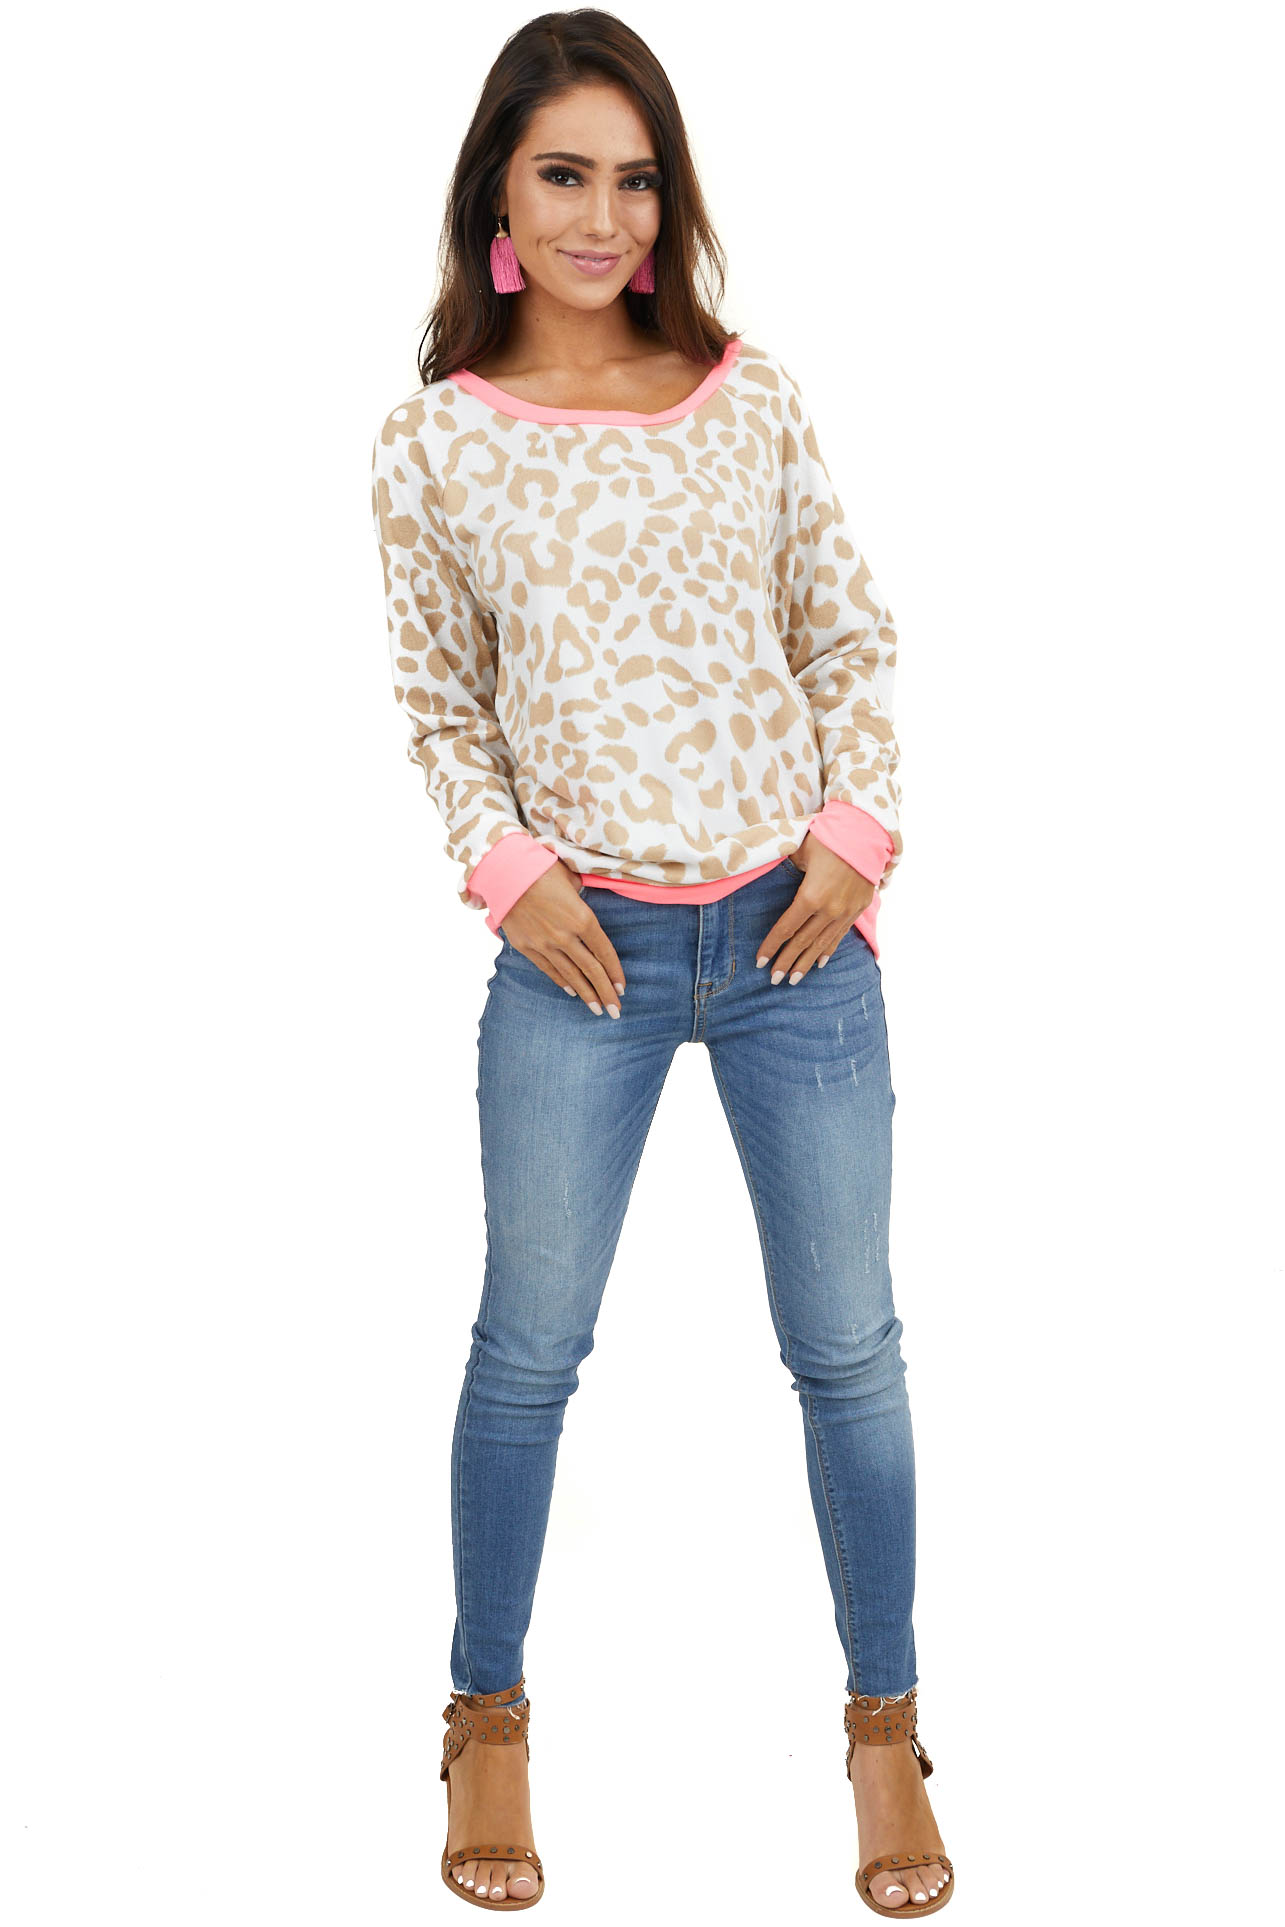 Beige and Hot Pink Leopard Print Long Sleeve Pullover Top